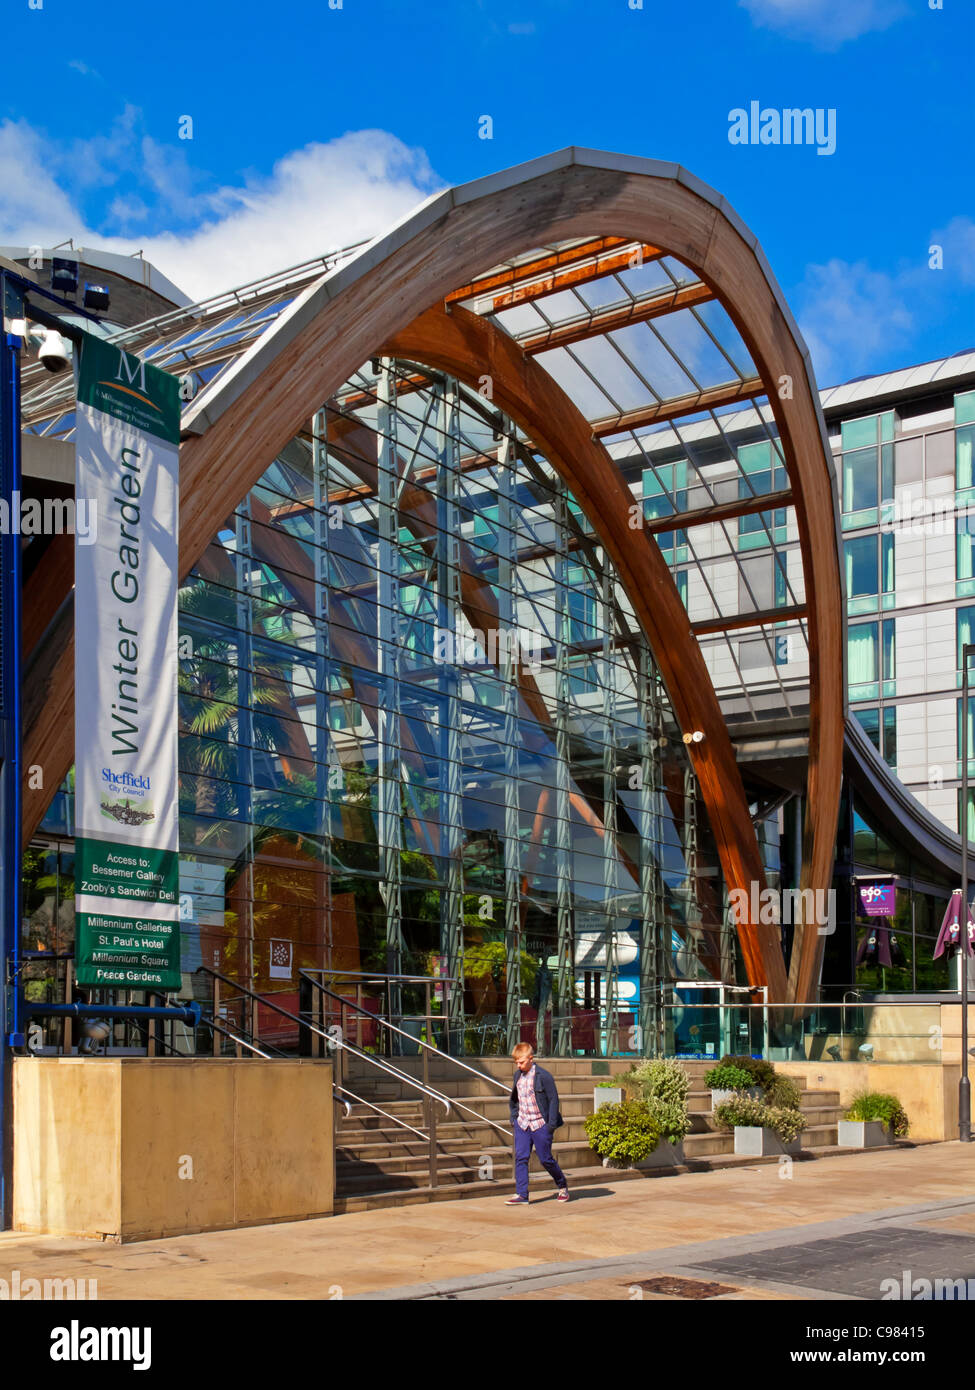 sheffield winter garden south yorkshire uk one of the largest